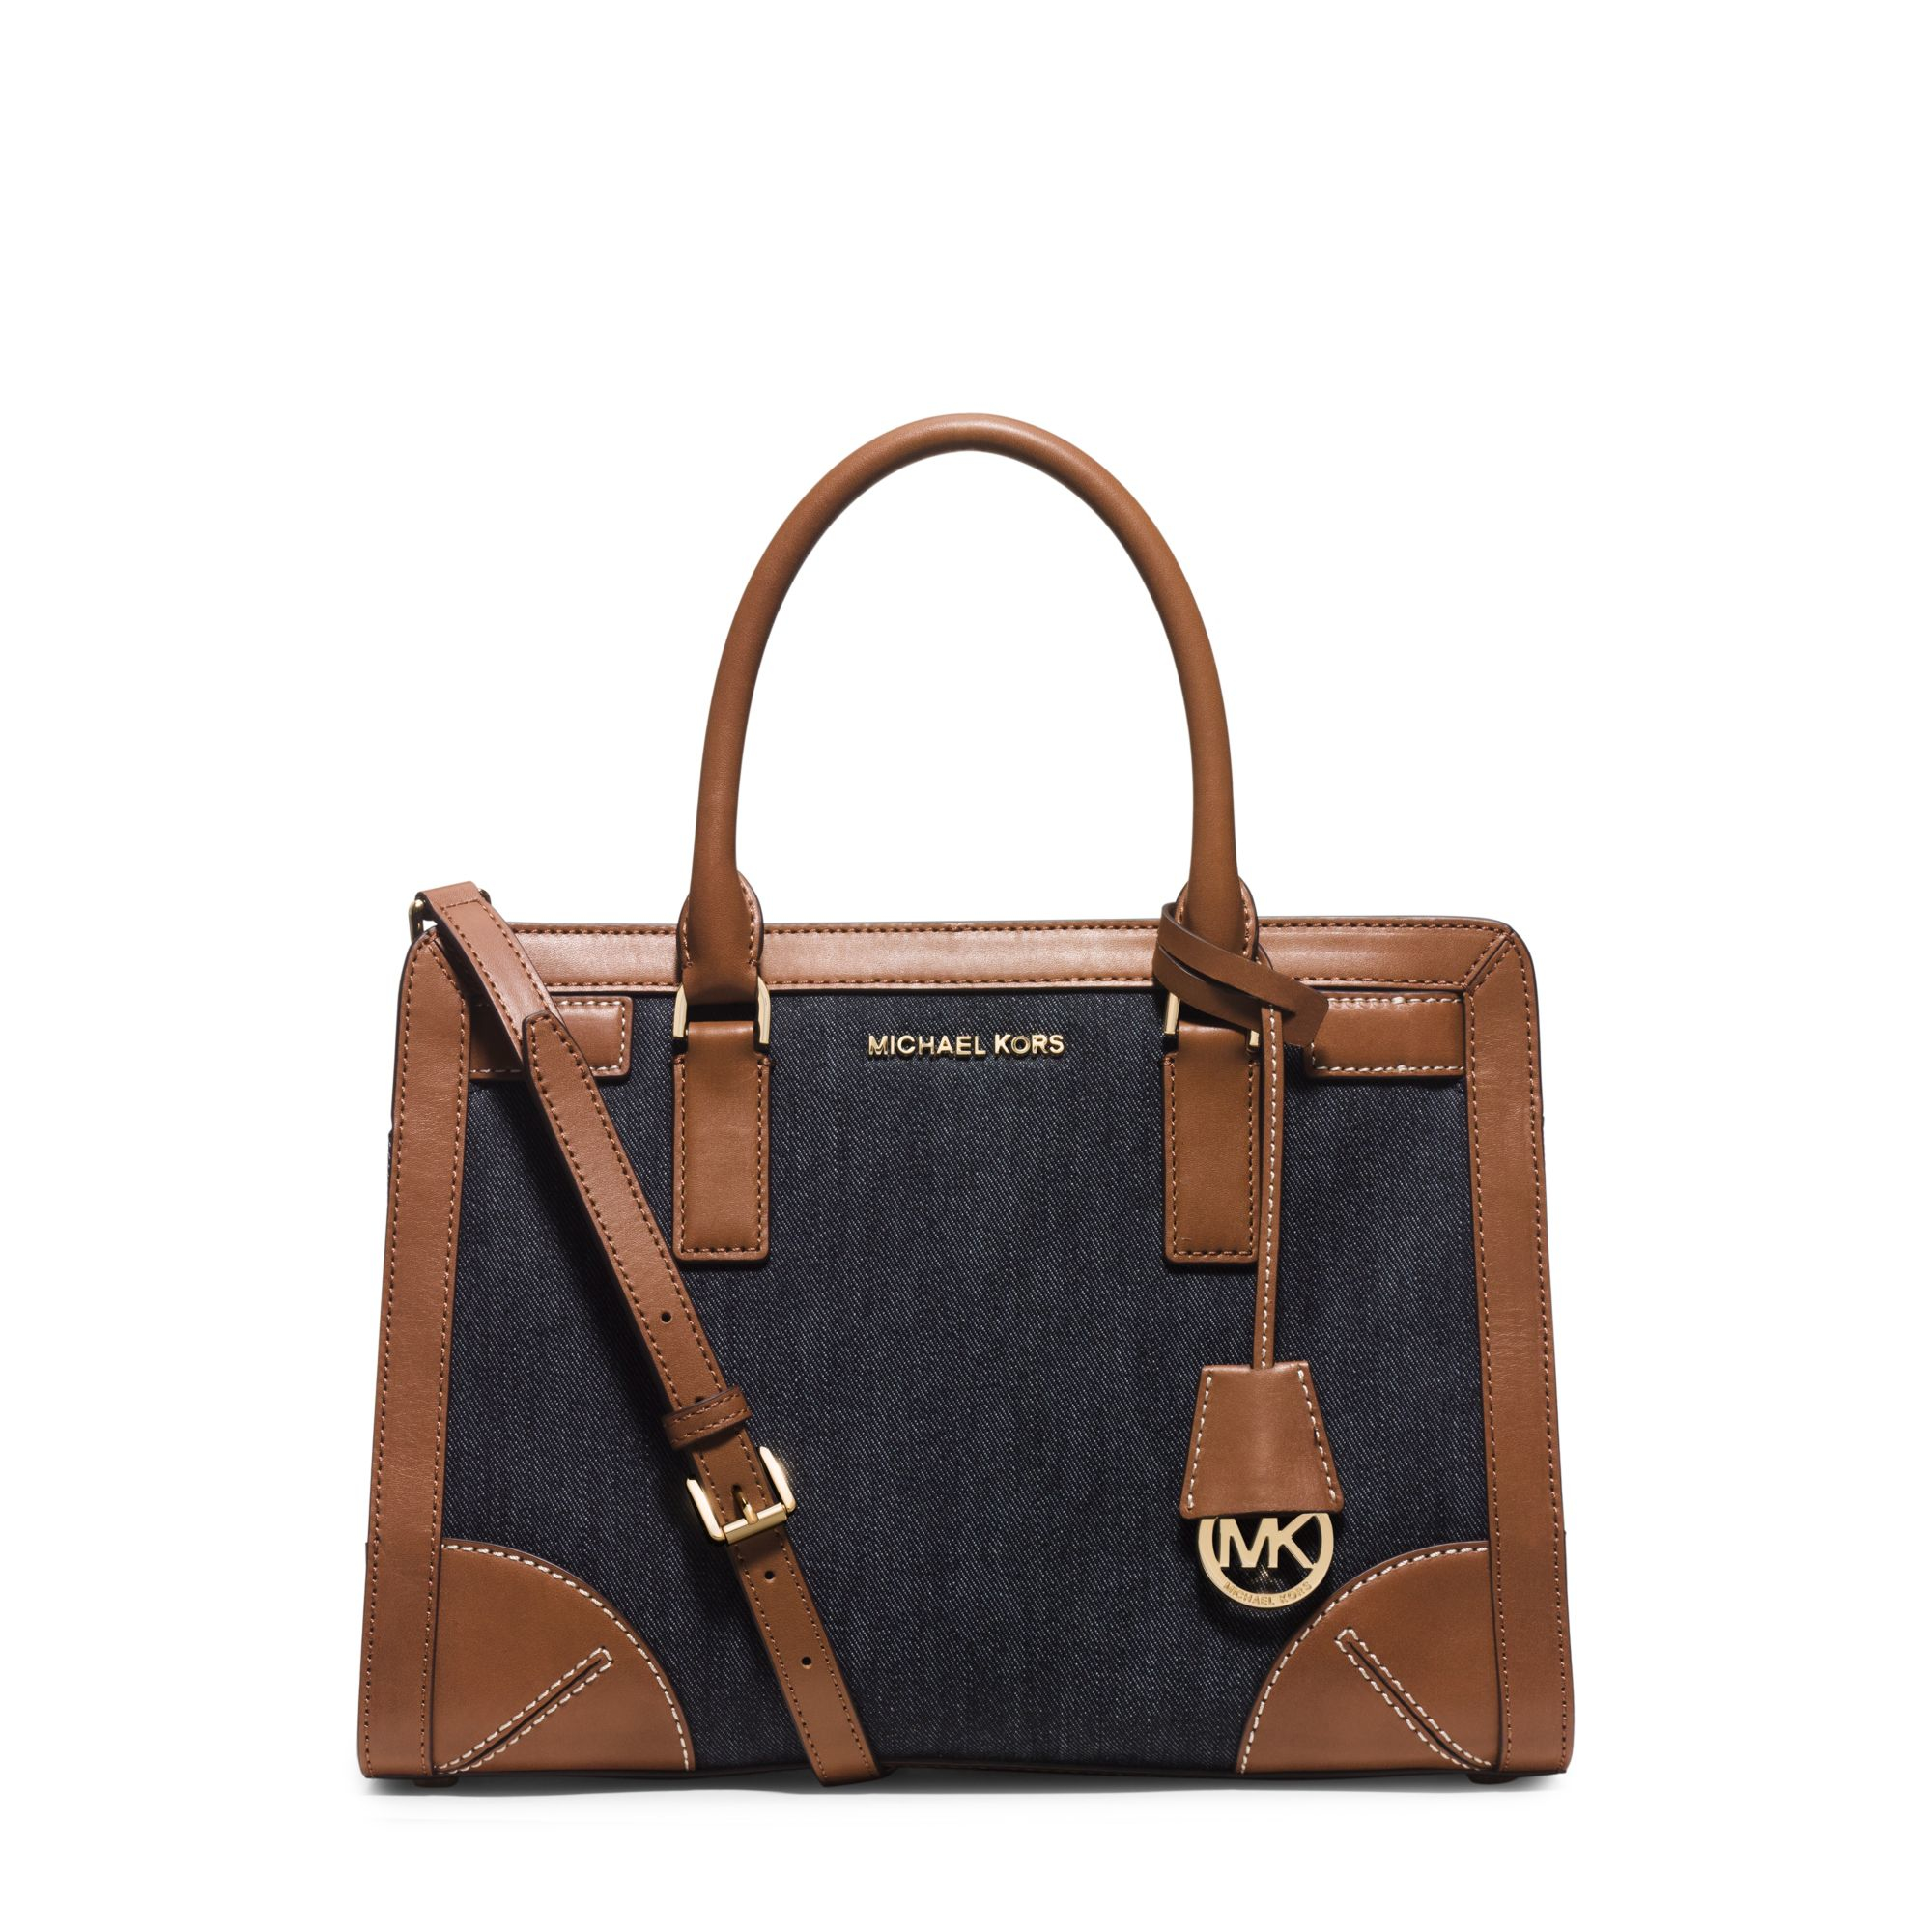 7dfe8ec4937e michael kors woven denim handbag riley bag uk - Marwood ...